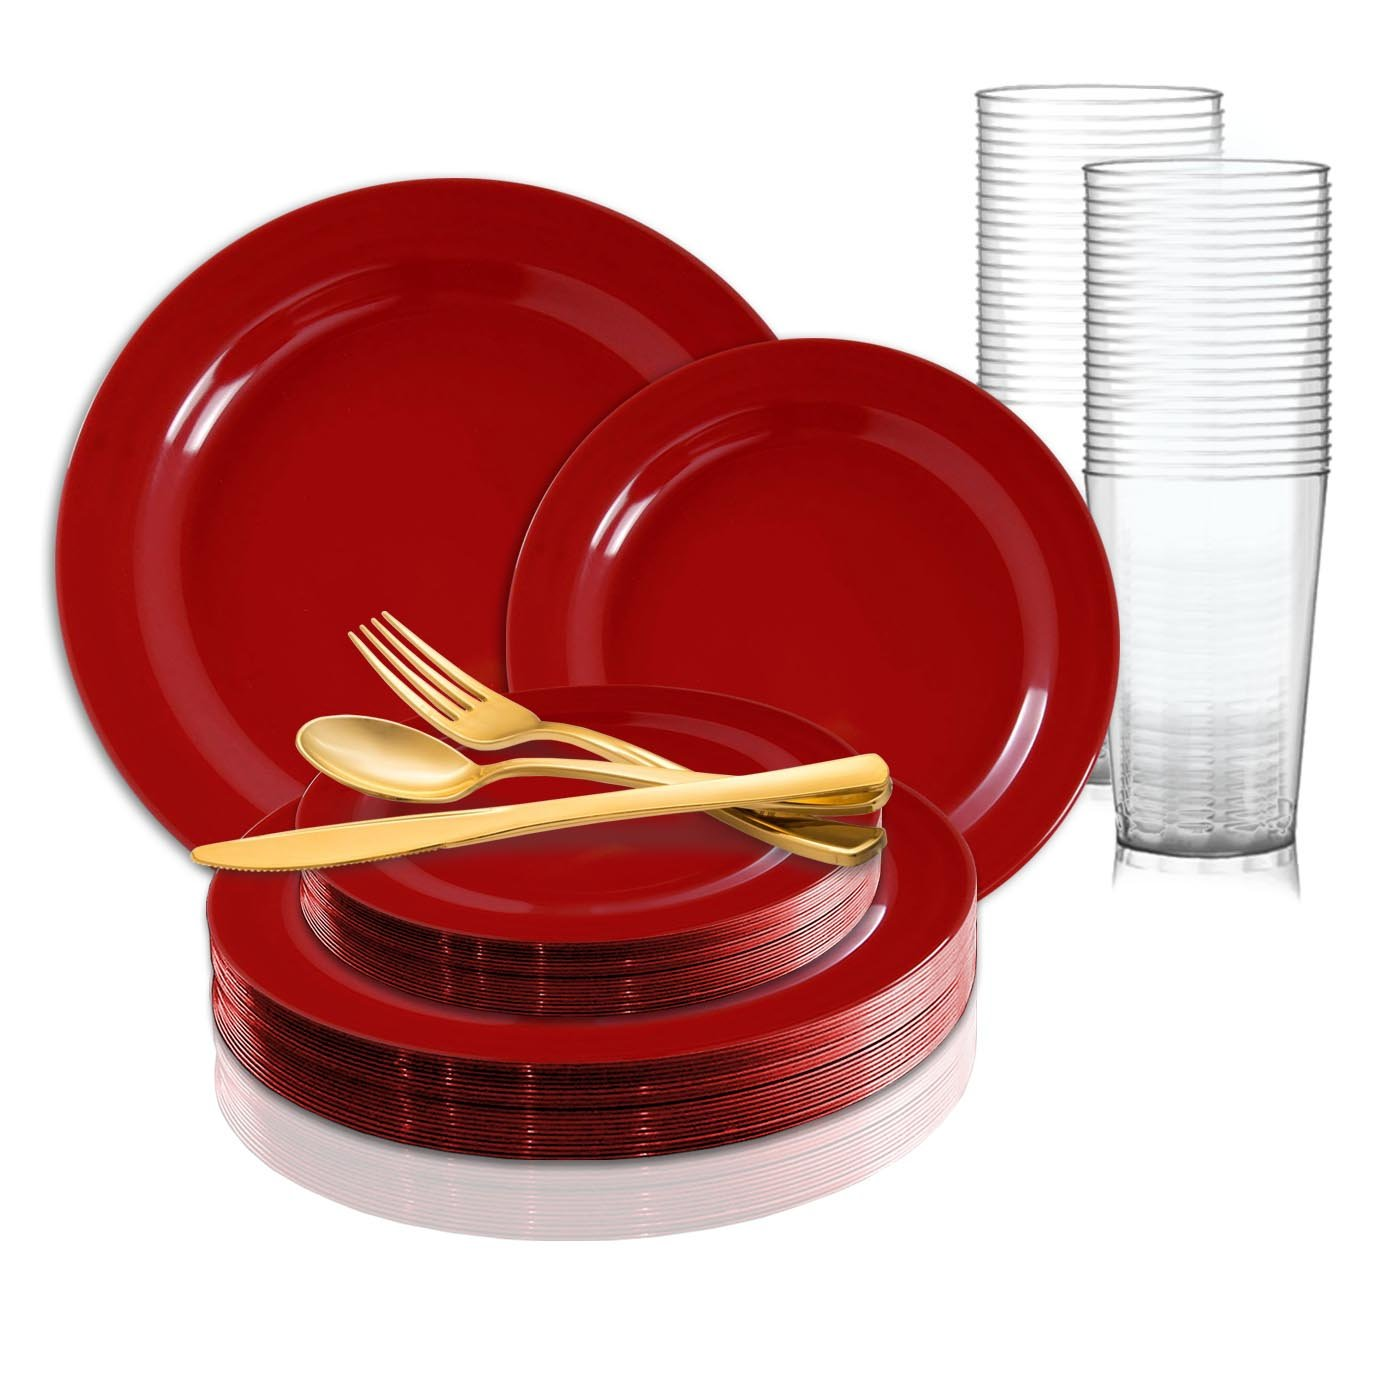 Plastic Plates Red Round Wedding Value Set Smarty Had A Party